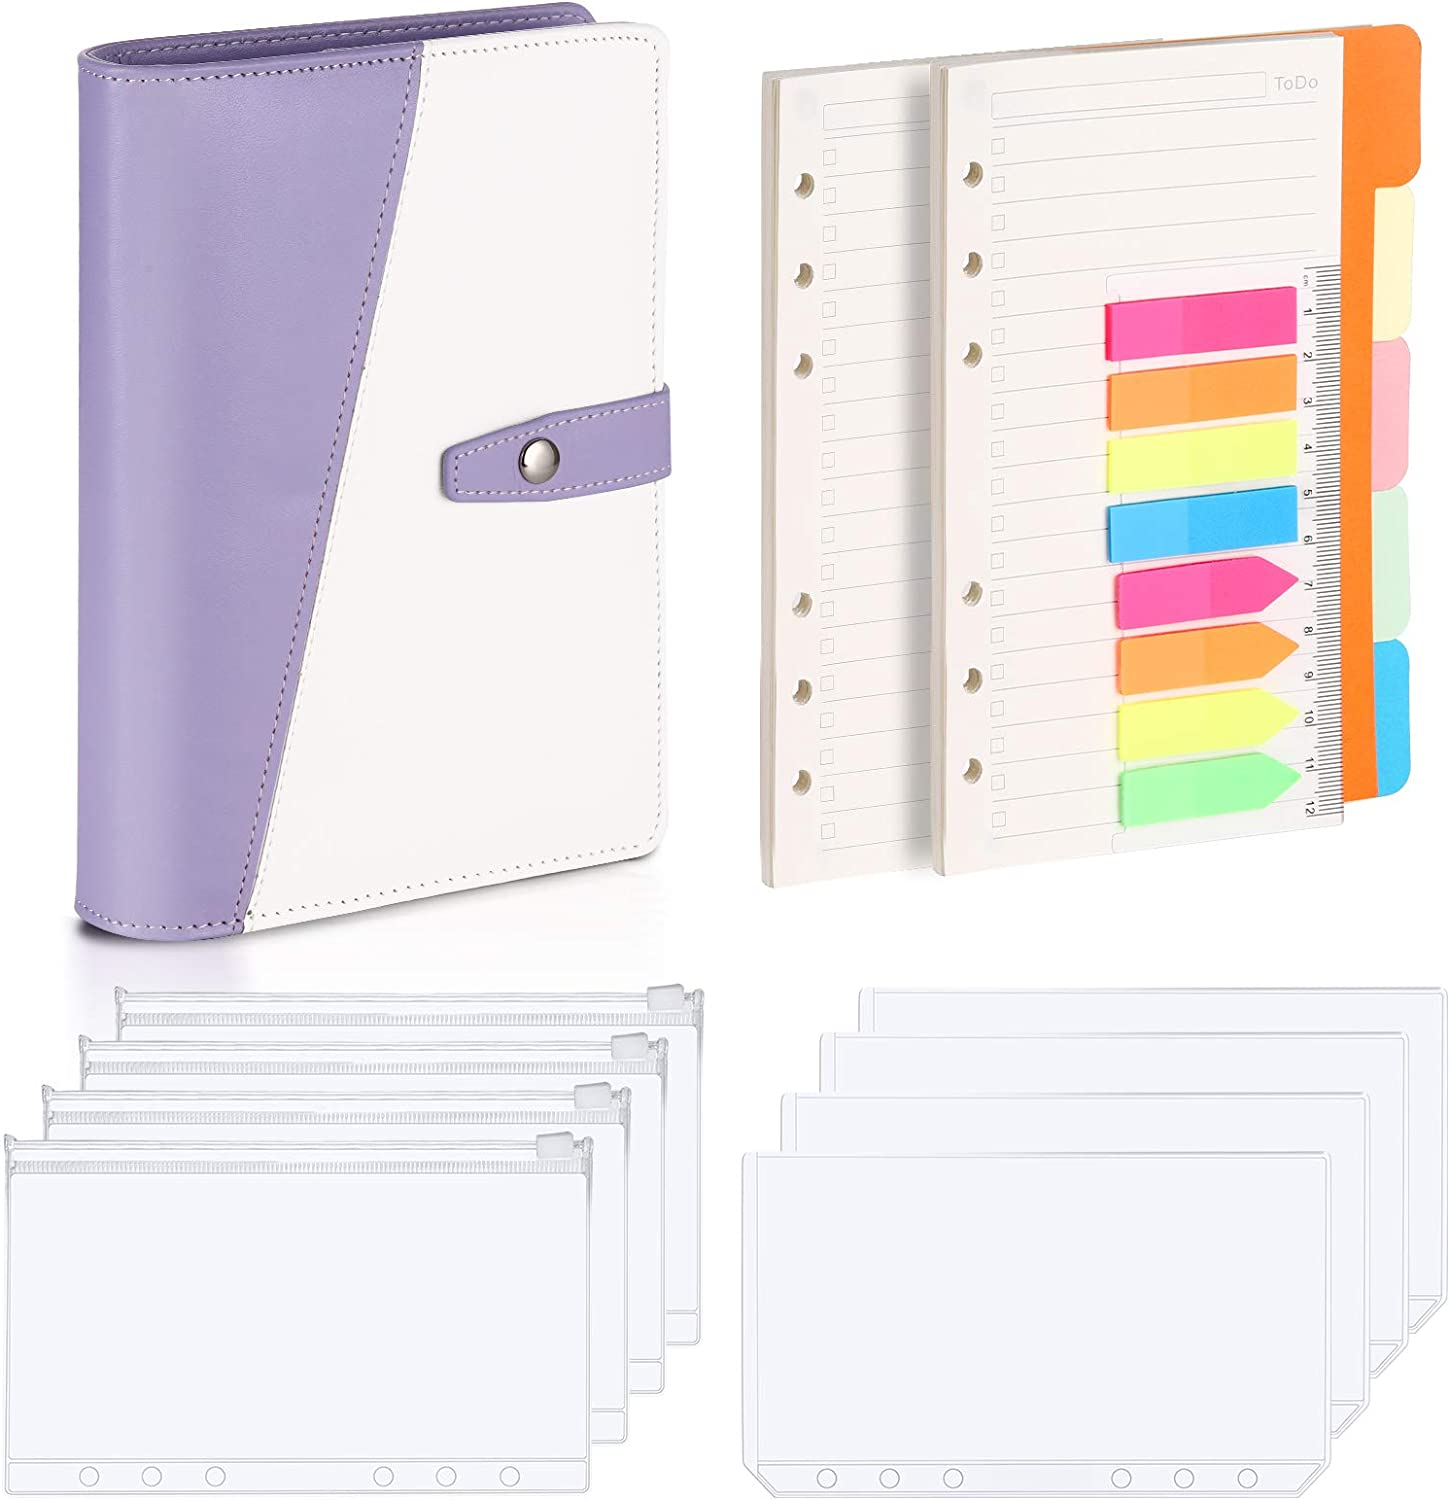 Loose Leaf Personal Organizer Binder Cover Purple Leather Binder Onlyesh Budget Binder A6 Binder with 6 Ring Planner Ideal Budget Planner Gift for Women